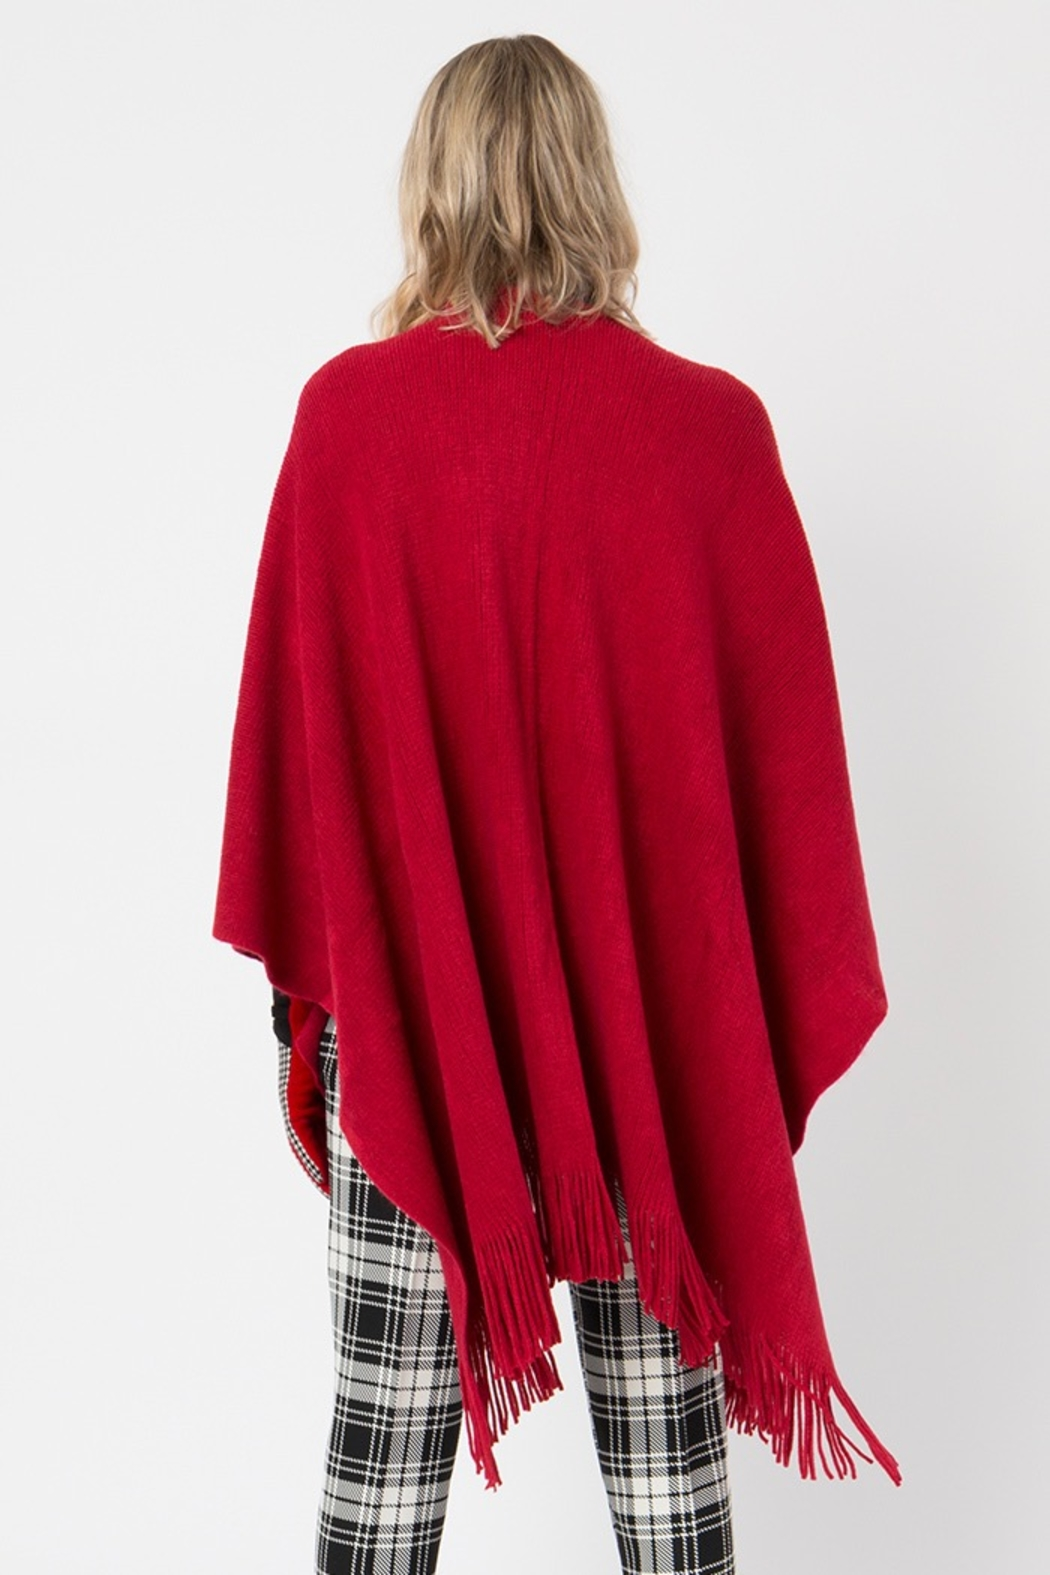 Pia Rossini ANTHEA WRAP - Side Cropped Image